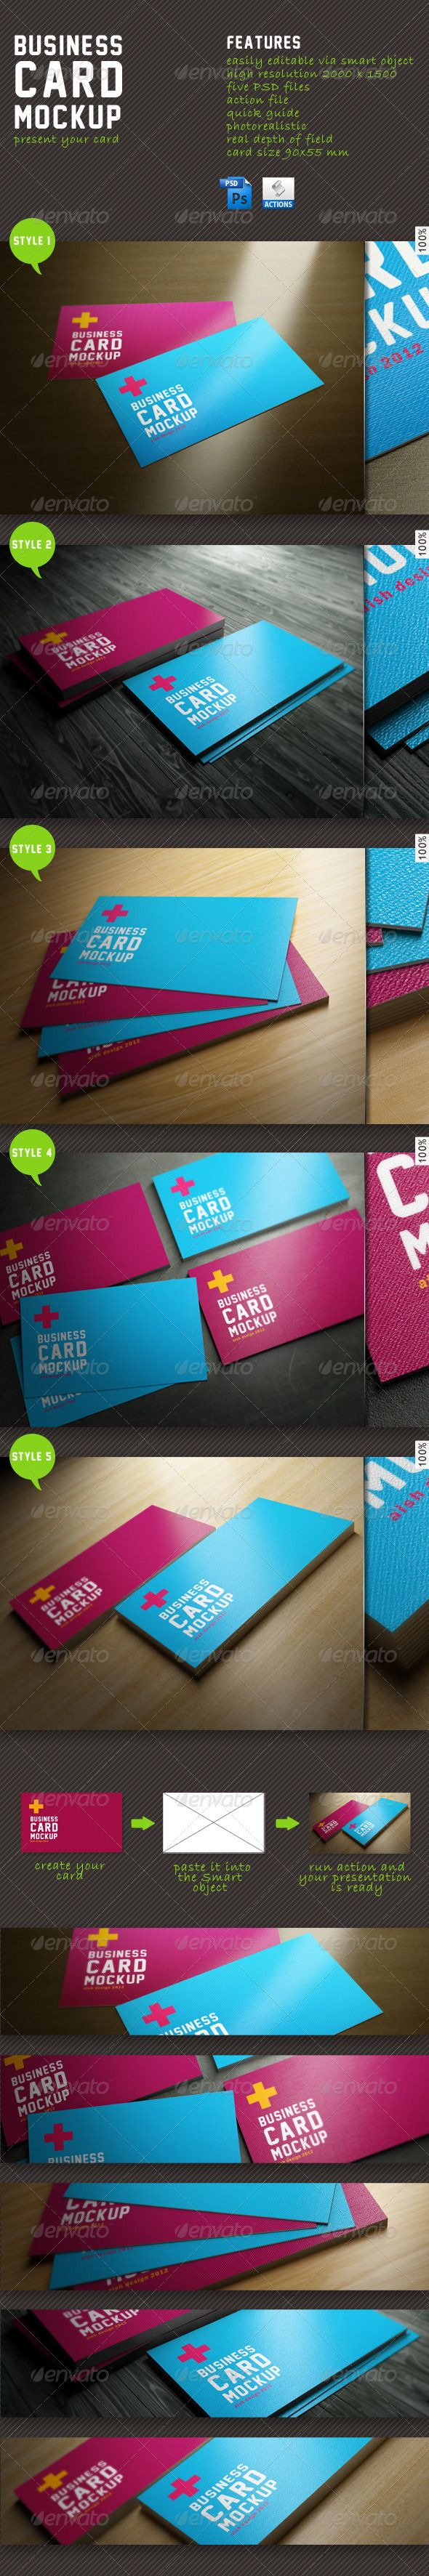 718 best business card mockup images on pinterest miniatures business card mockuppresent your card features easily editable via smart object high resolution five psd files action file quick guide photorealistic real reheart Gallery